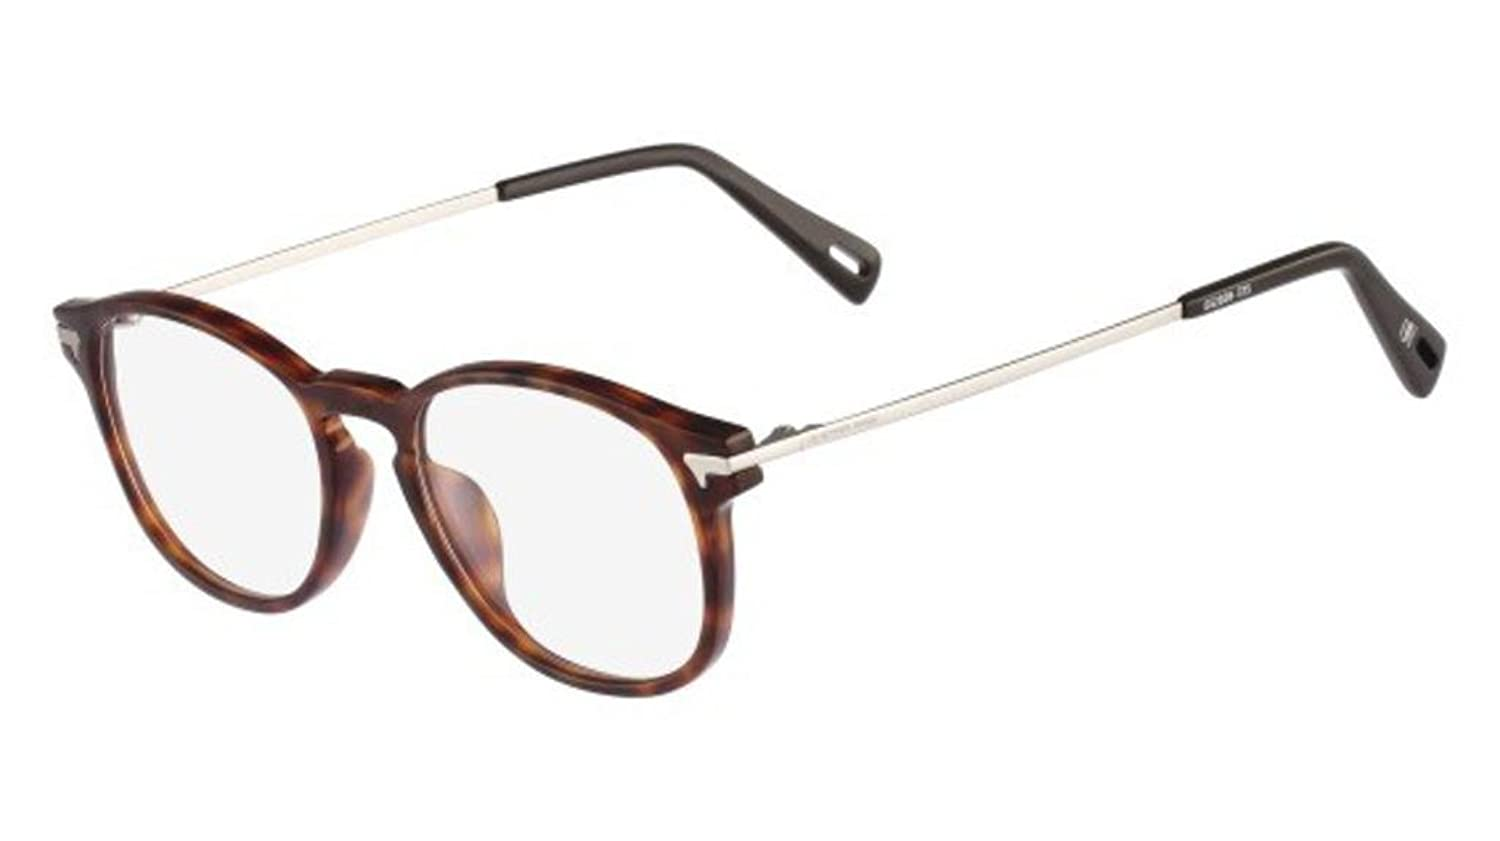 G-STAR RAW Eyeglasses GS2608 COMBO ROVIC 725 Blonde Havana 48MM